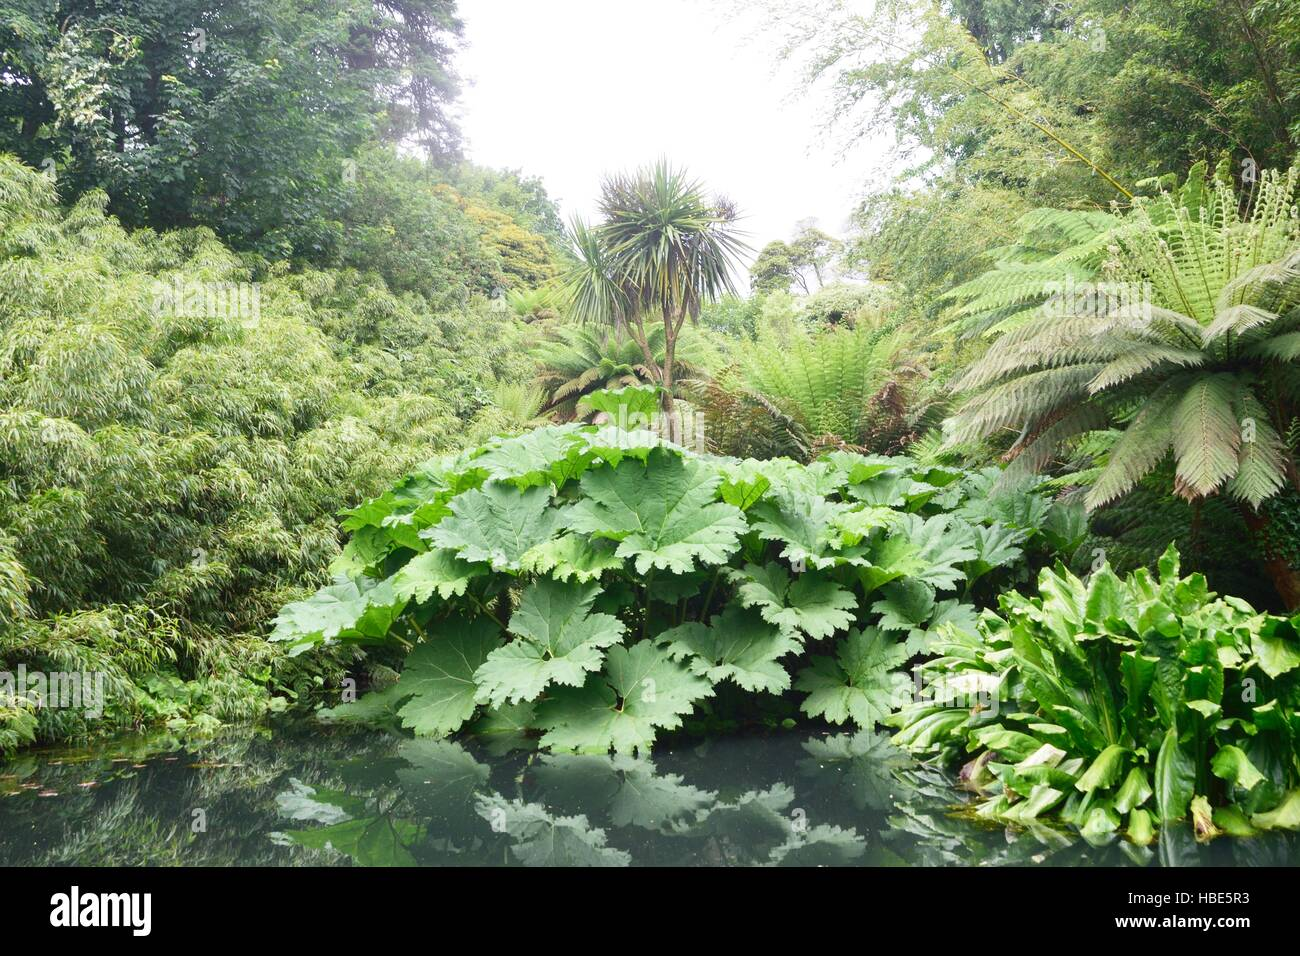 Lush green jungle like plants with pond - Stock Image